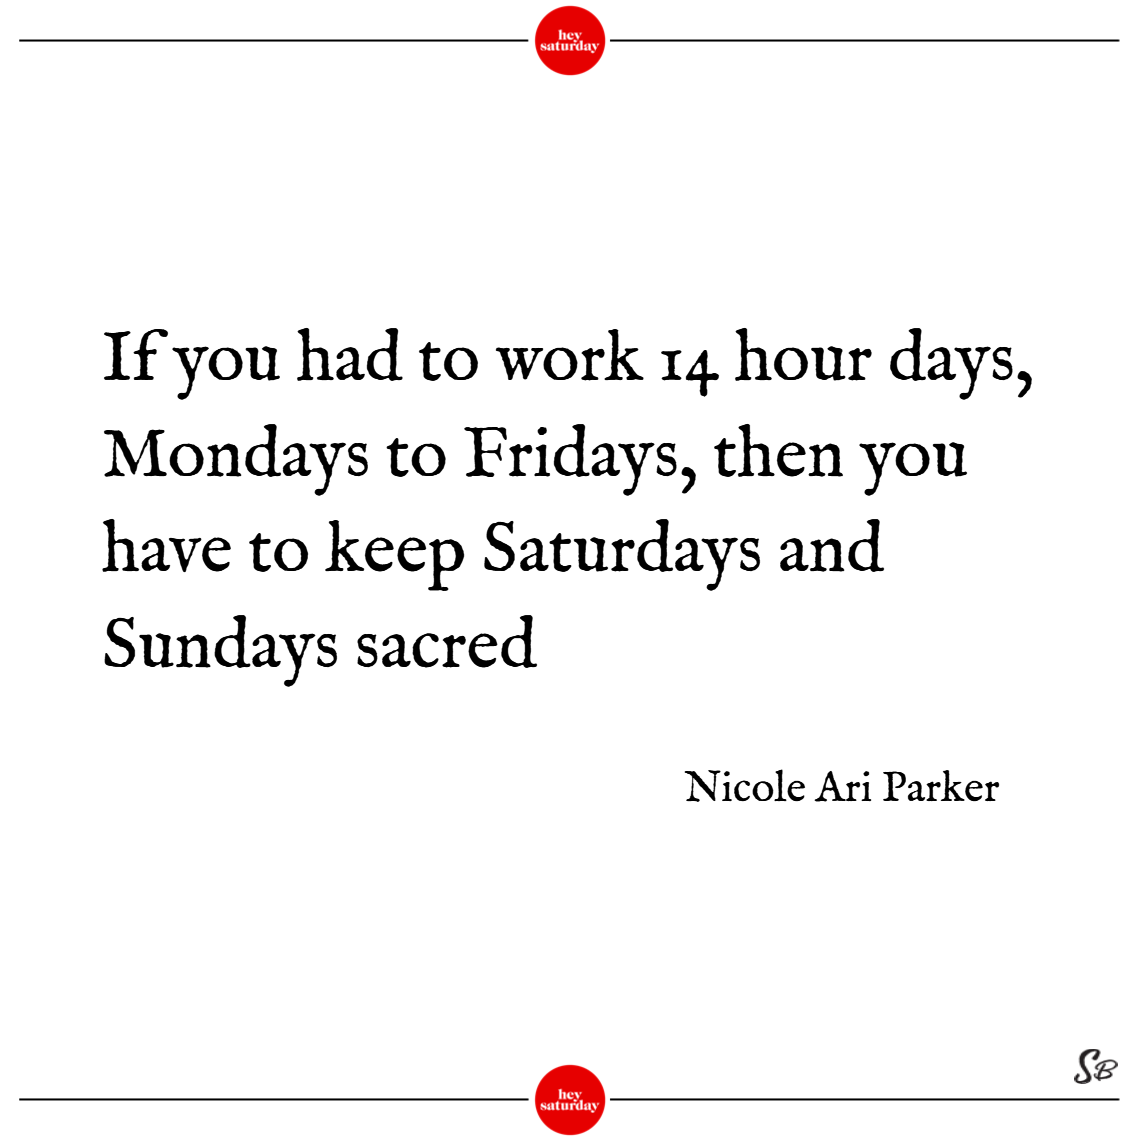 If you had to work 14 hour days, mondays to fridays, then you have to keep saturdays and sundays sacred. – nicole ari parker